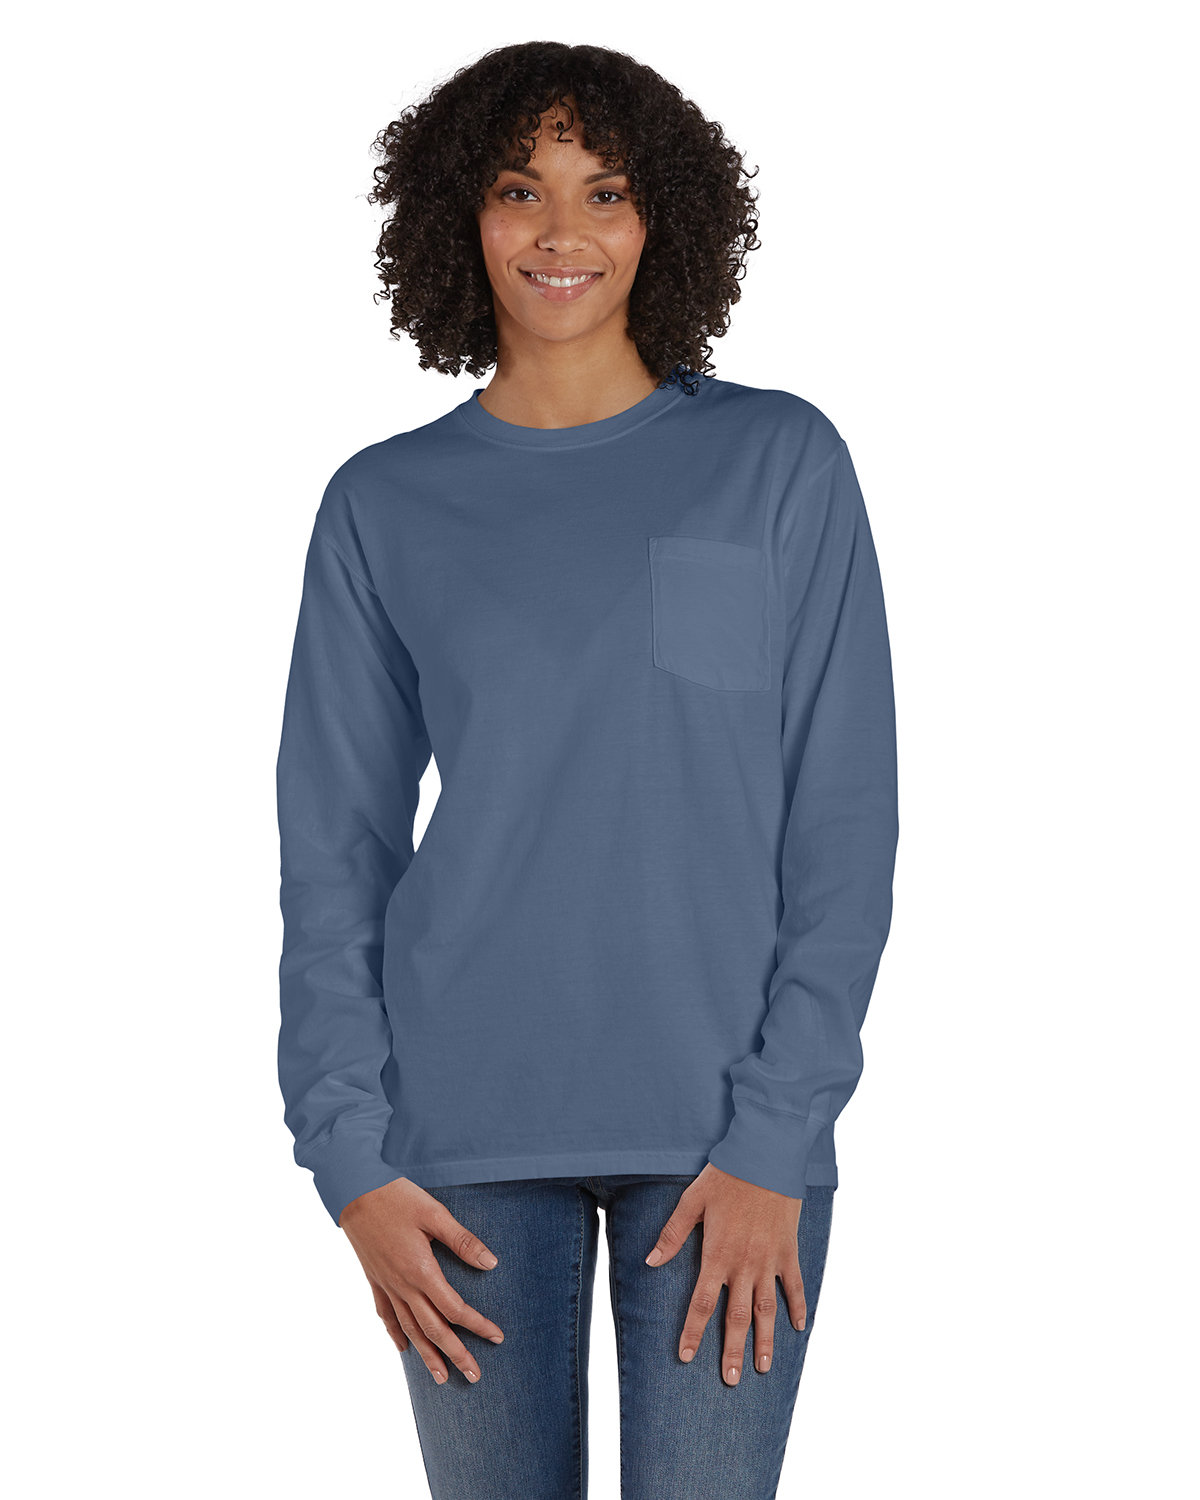 ComfortWash by Hanes Unisex Garment-Dyed Long-Sleeve T-Shirt with Pocket SALTWATER